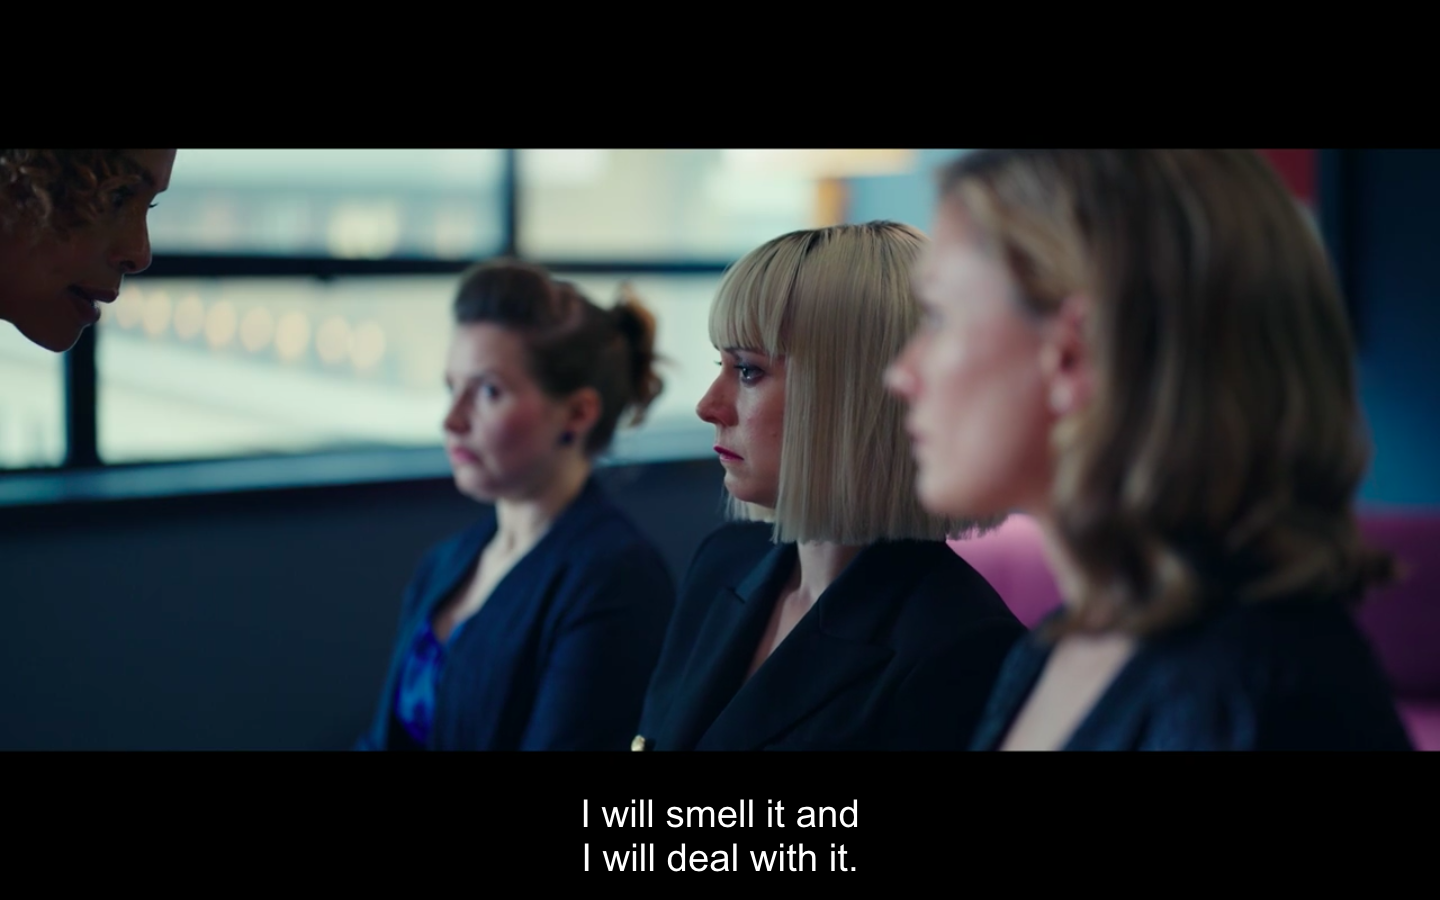 """Caroline's profile is just visible as she leans down to speak to Robyn, Eve, and Melody who sit miserably in front of her. The caption below says, """"I will smell it and I will deal with it."""" A reference to her being like a polar bear."""